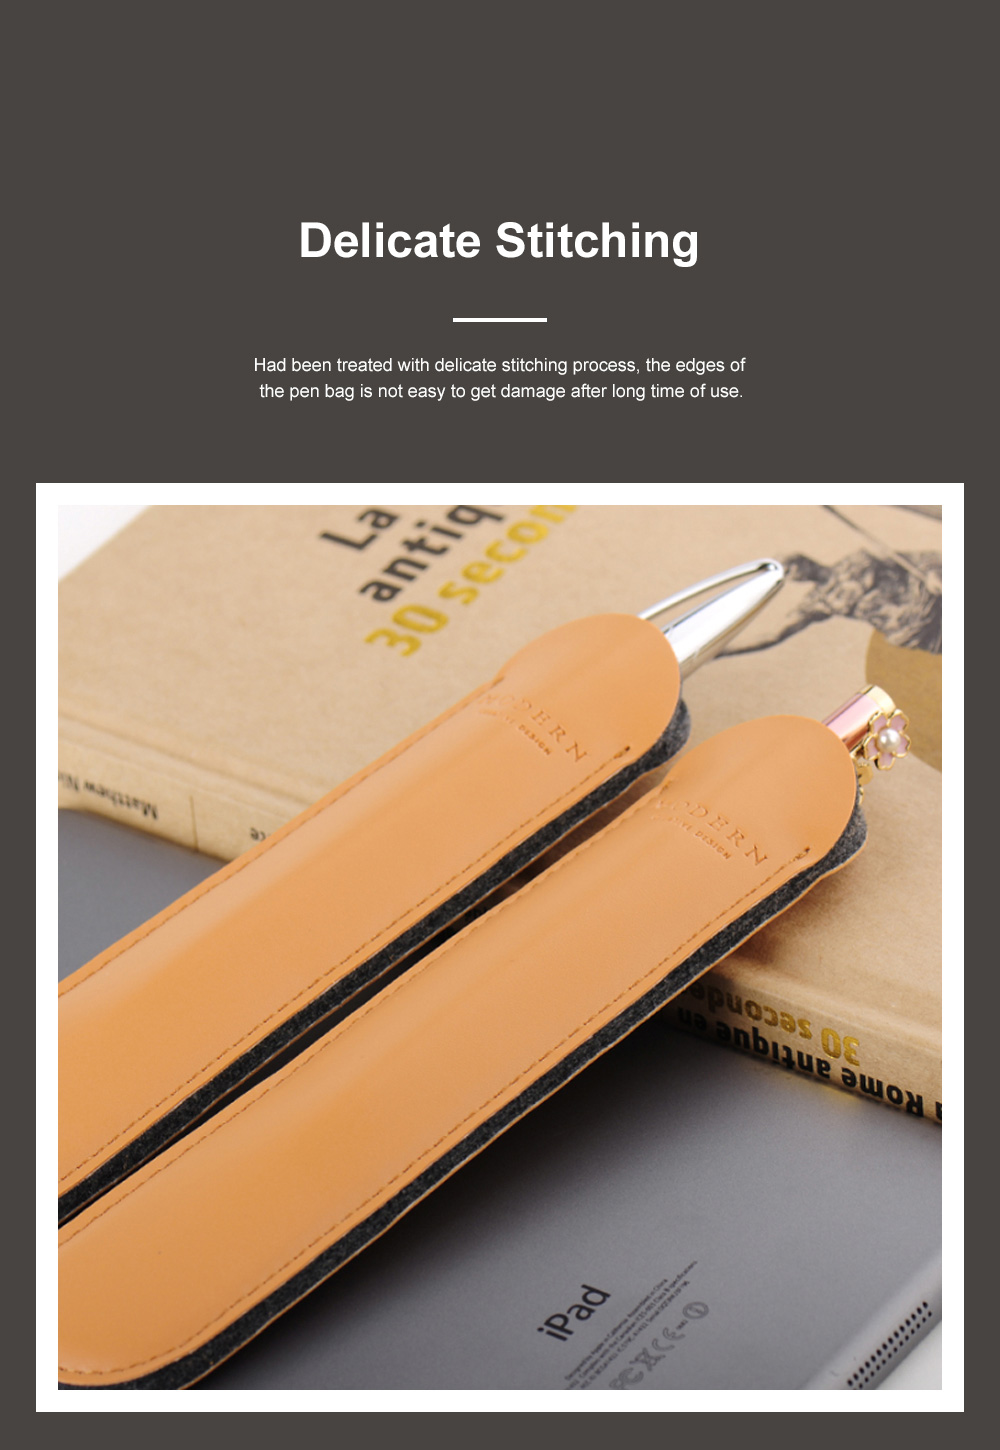 Minimalist Vintage Business Tough Soft Leather Pen Bag Pencil Case with Delicate Stitching Smooth Wool Felt Lining 2